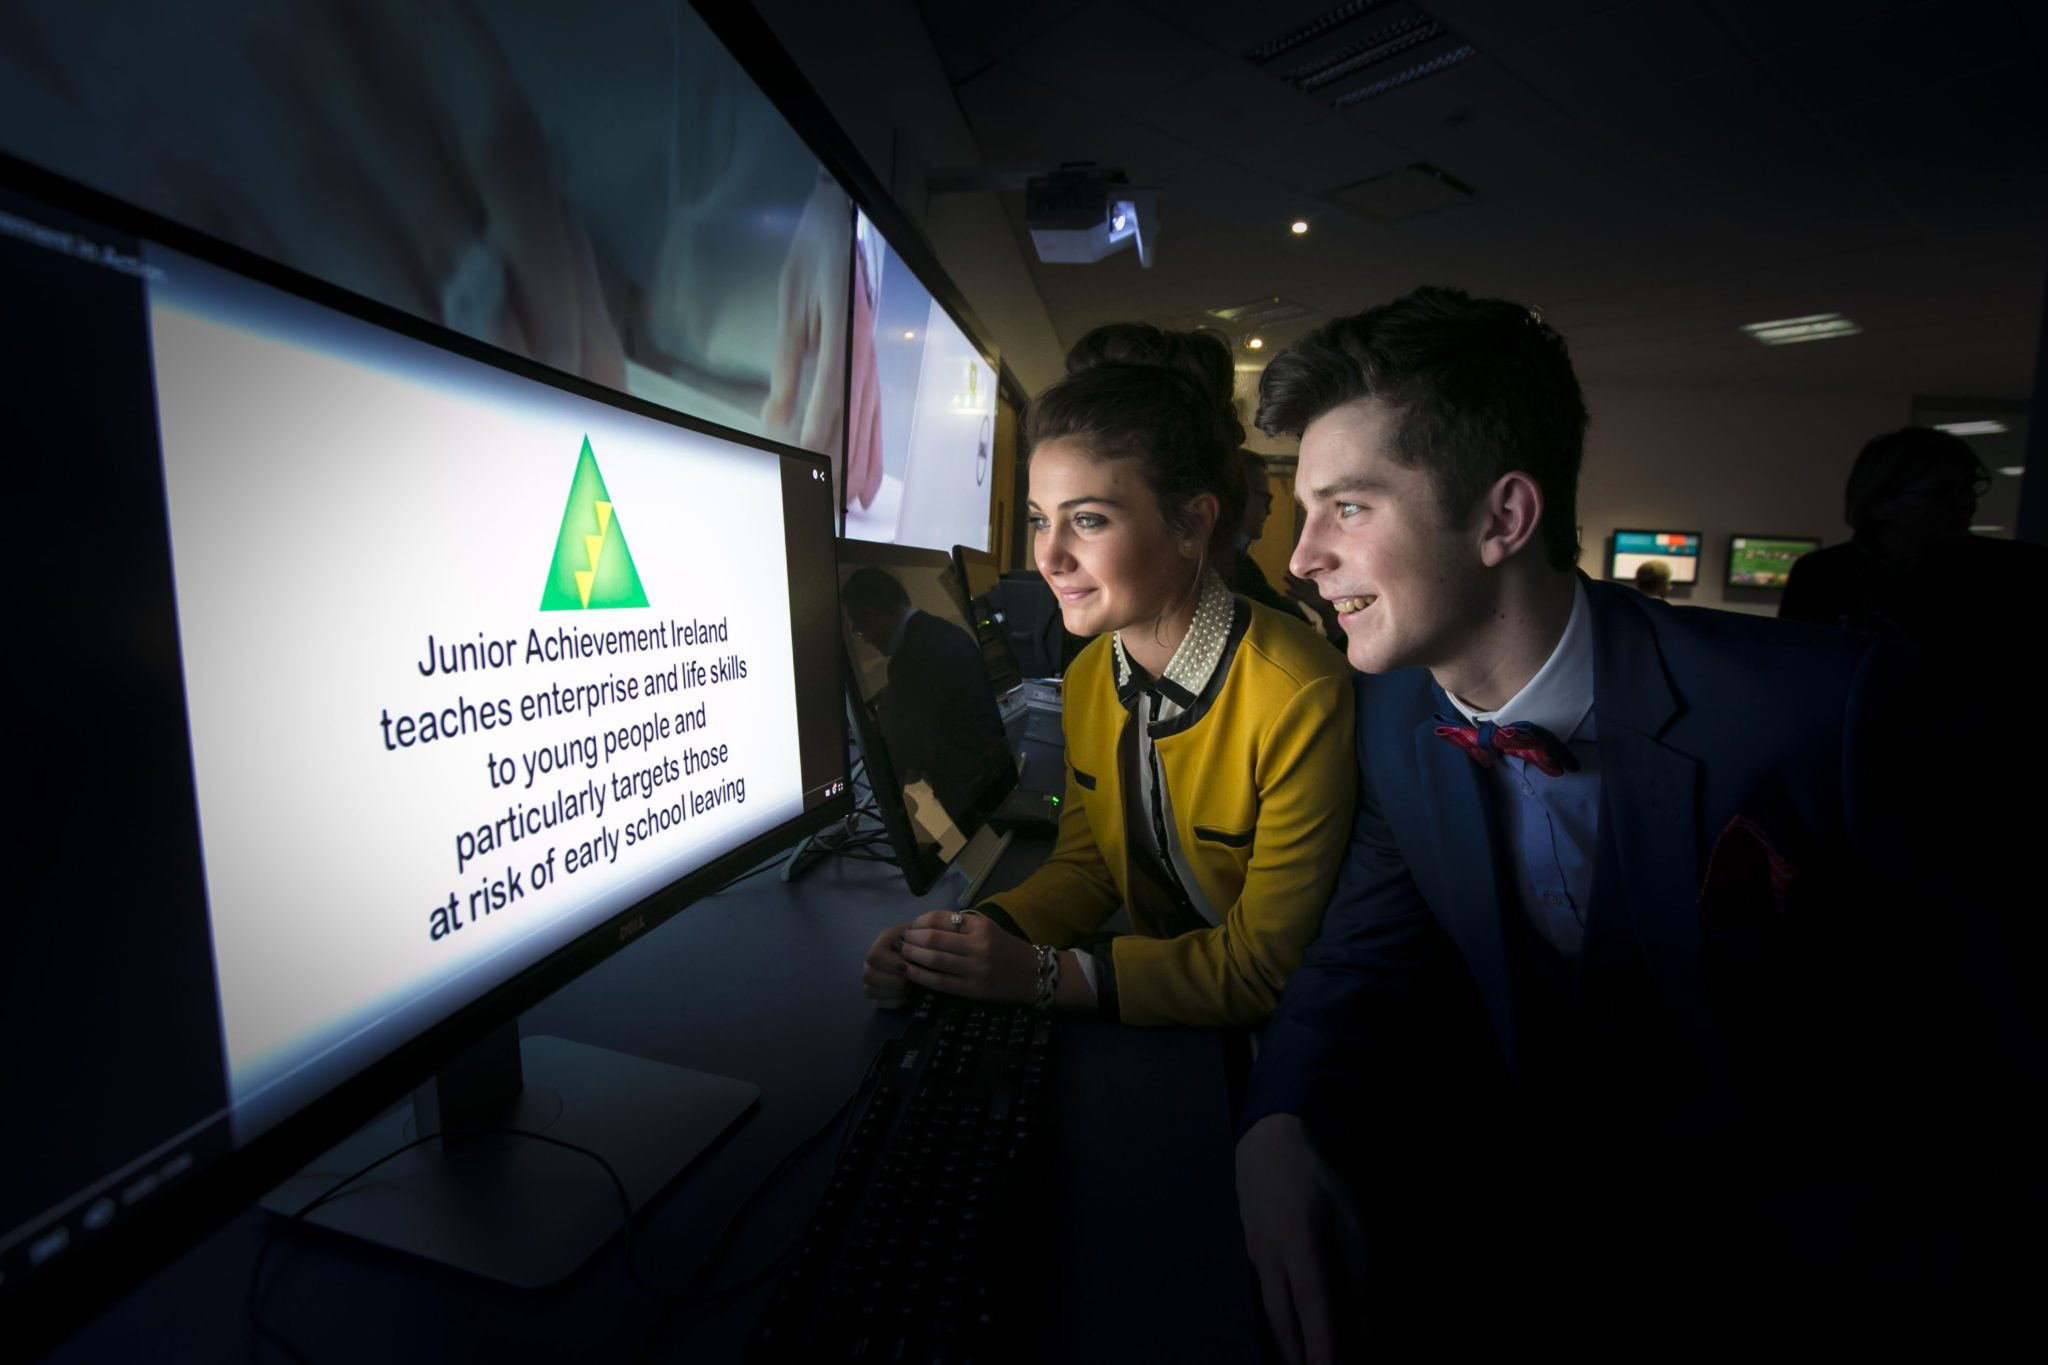 2015 November: Desmond College Entrepreneurs Emma Herbert and Diarmuid Curtin from Guide a Key (photo by Brian Gavin : Press 22)